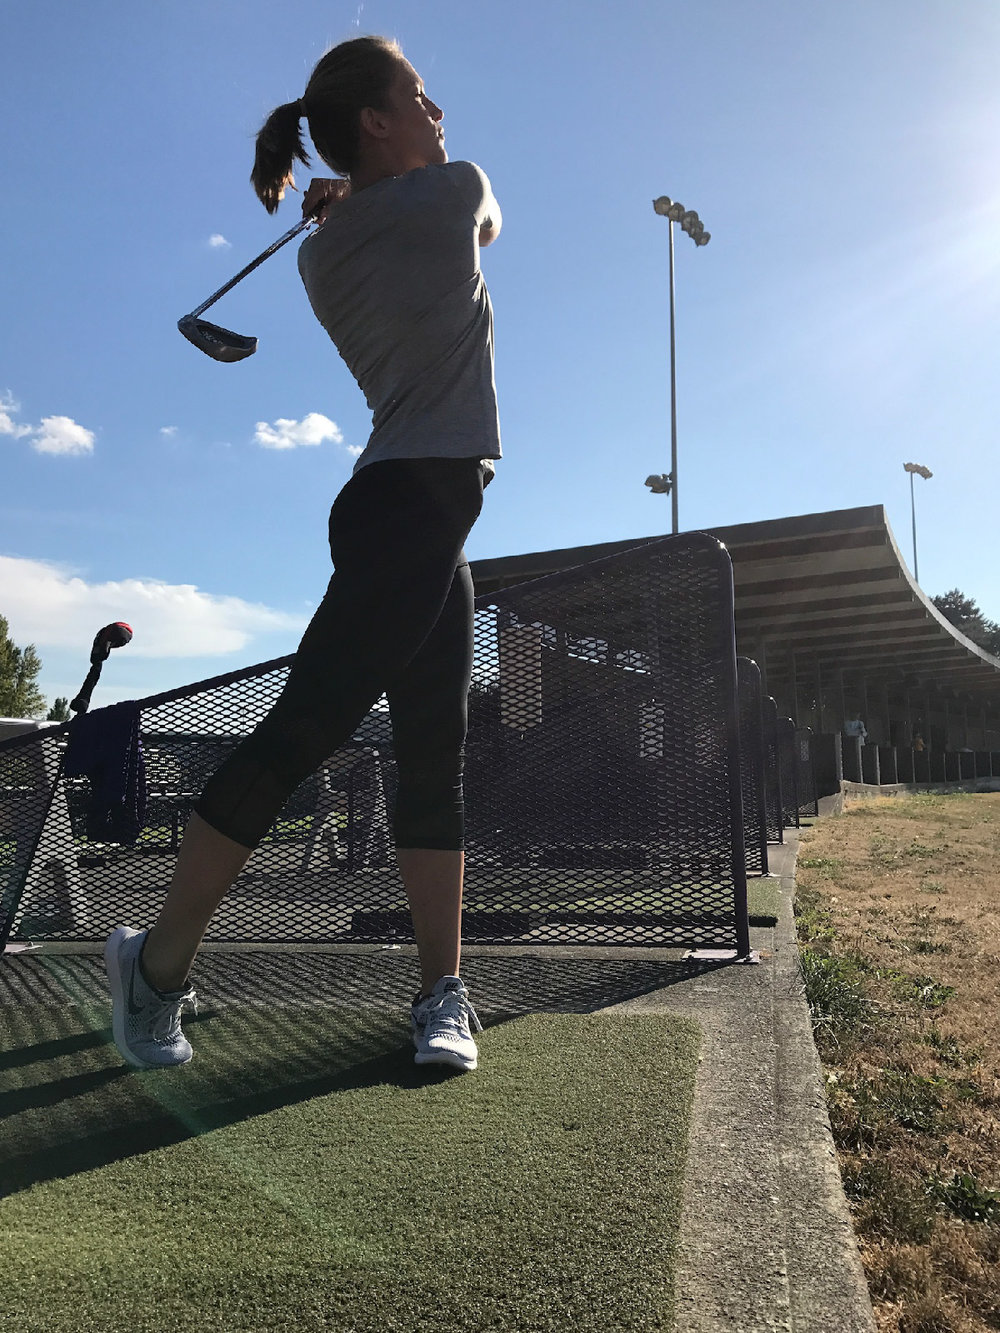 Practice your swing at the UW Driving Range (open to the public)!